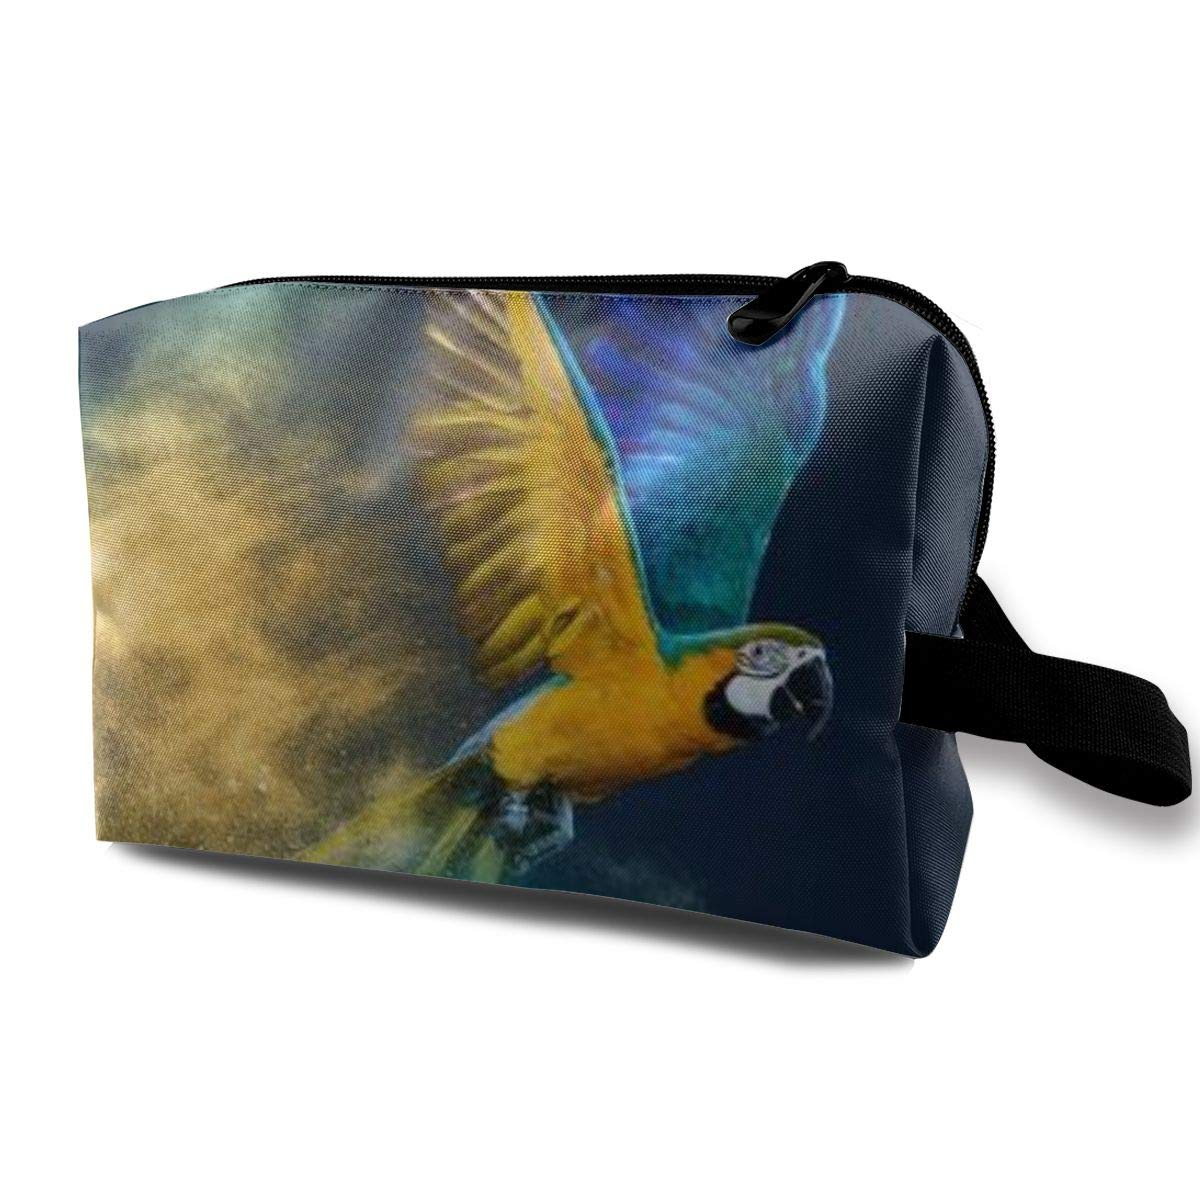 Makeup Bag Cosmetic Pouch Parrot Over Colourful Powder Explosion Multi-Functional Bag Travel Kit Storage Bag